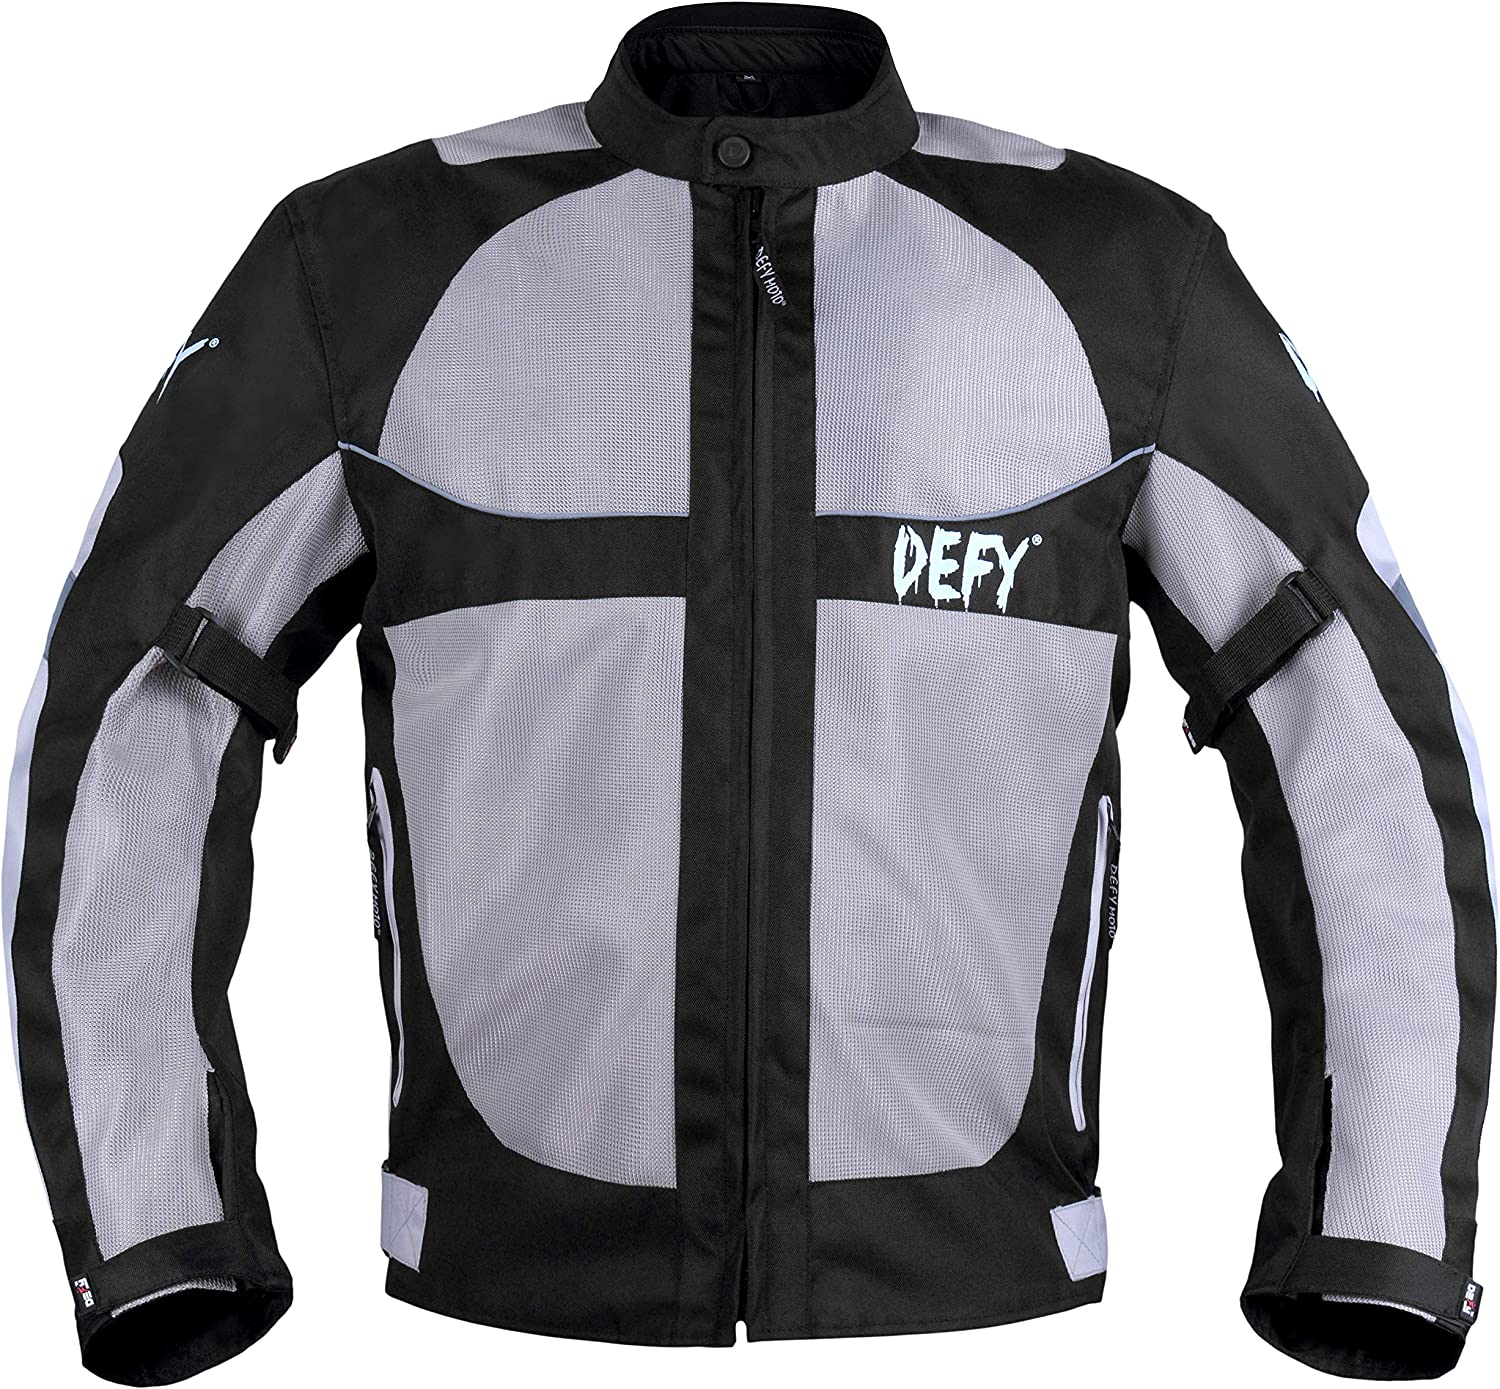 Red, XL DEFY Motorcycle Jackets for Men/'s Mesh Durable CE Armoured Summer Motorcycle Jacket